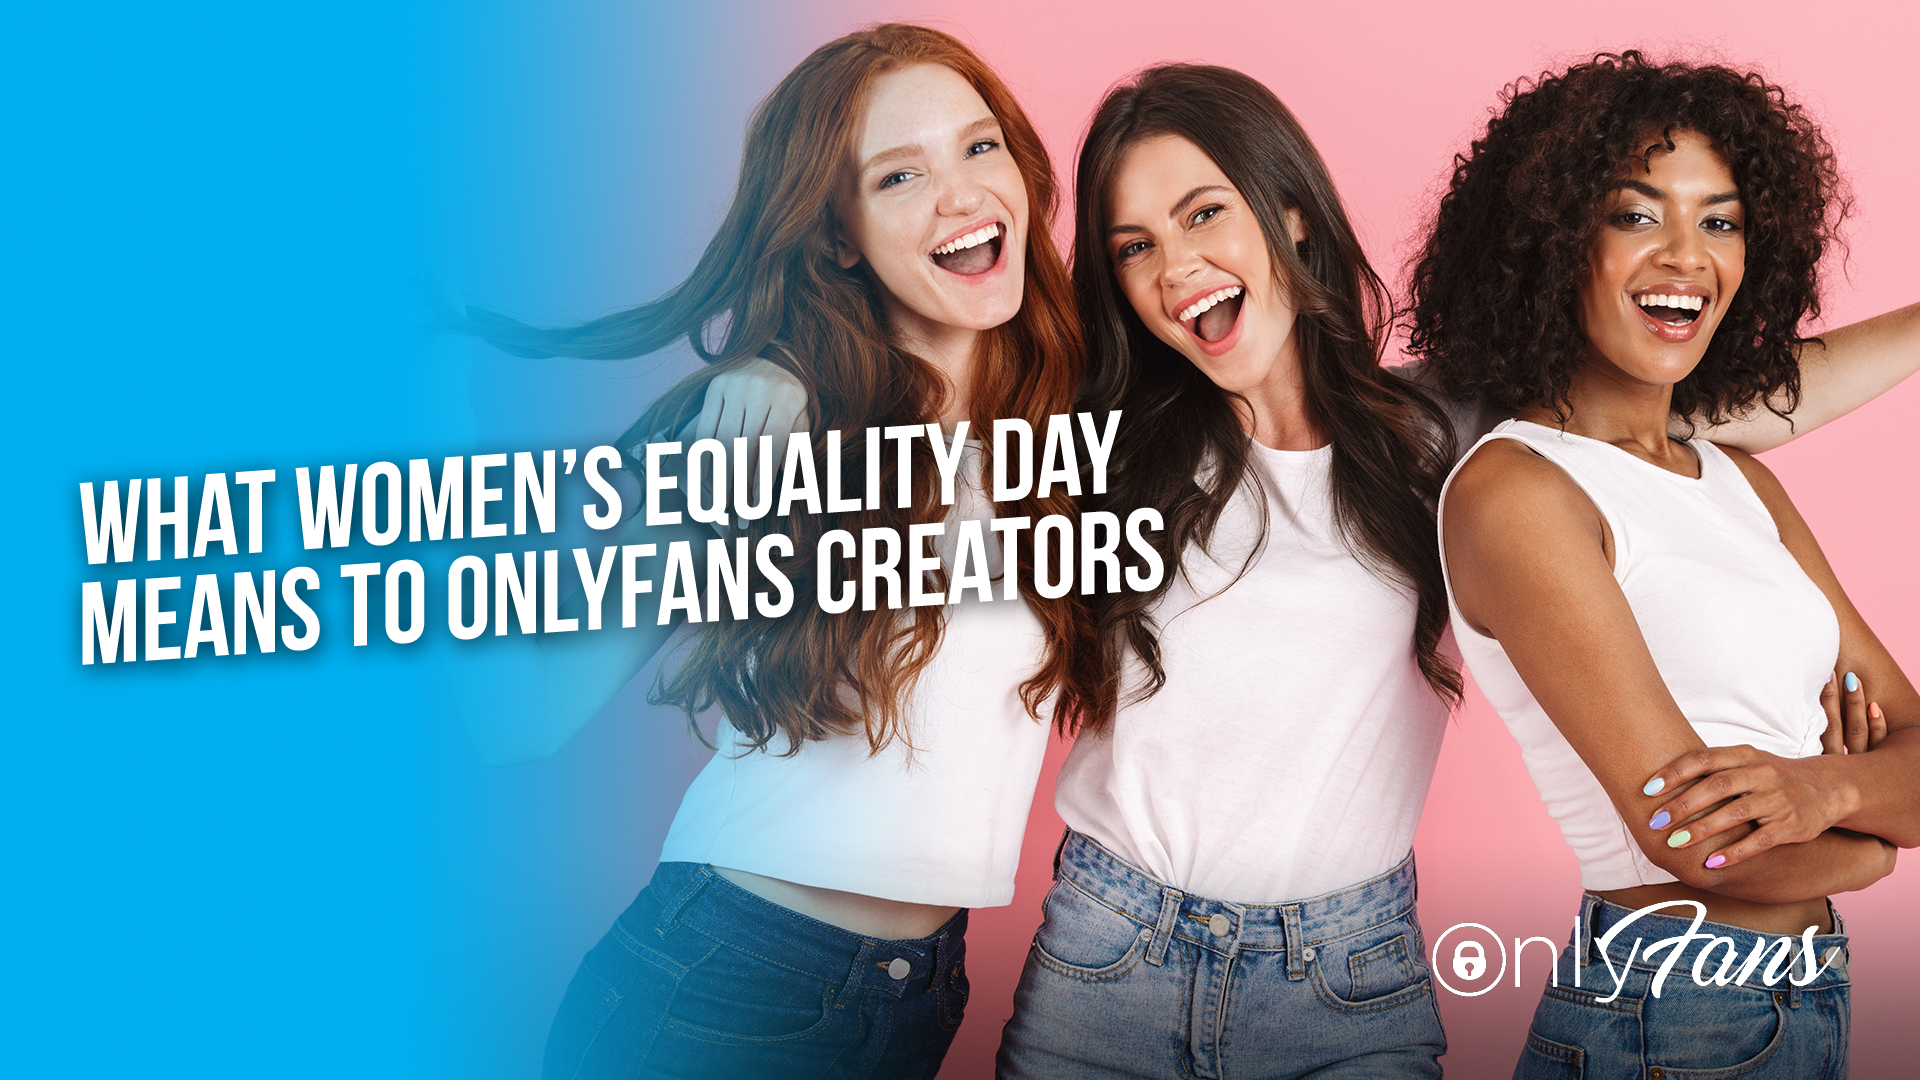 What Women's Equality Day Means To OnlyFans Creators